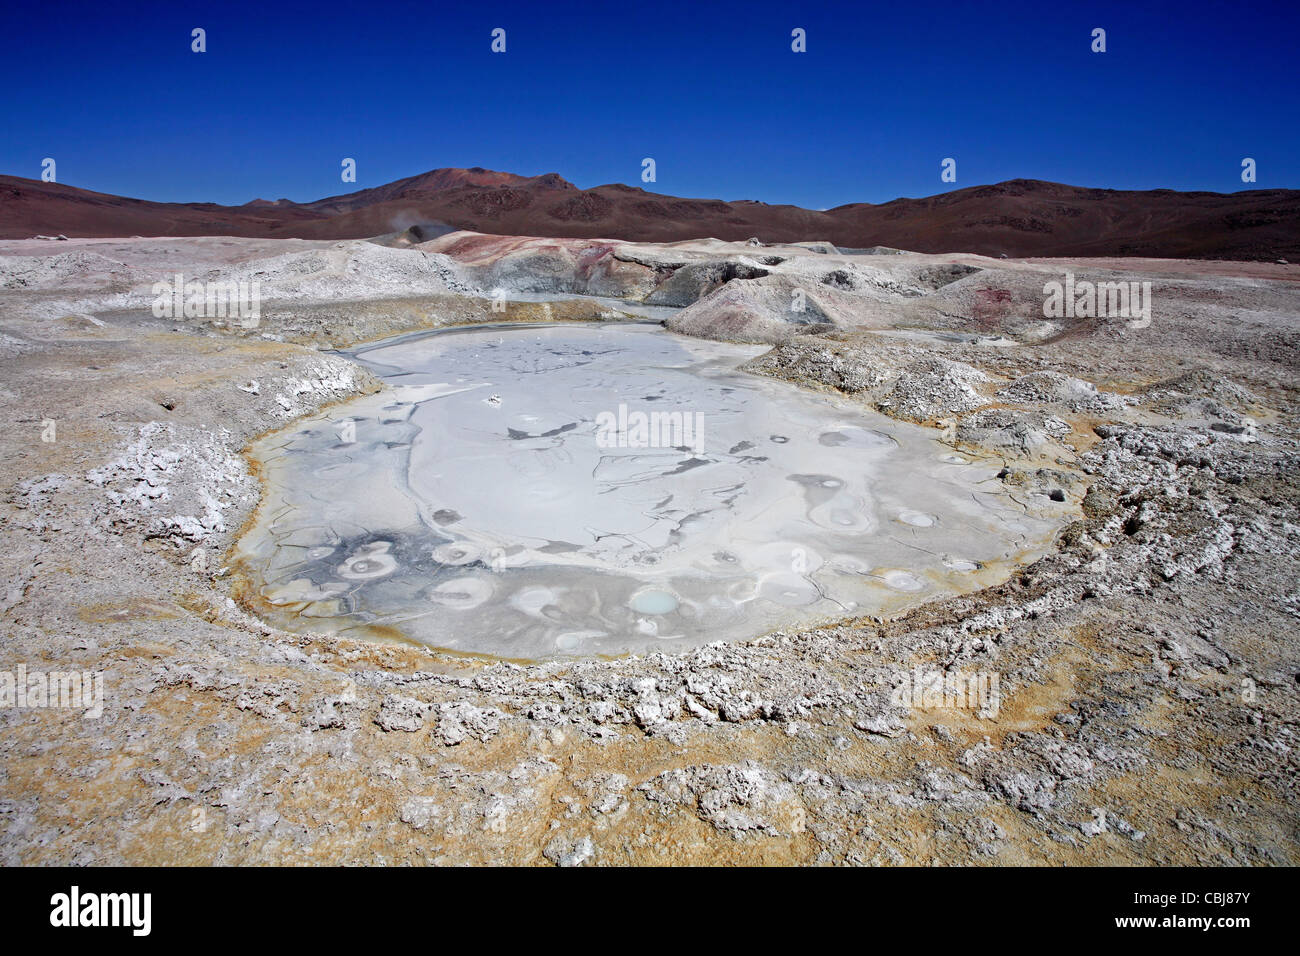 Boiling mud pool and hot spring in geothermal volcanic field Sol de Mañana, Altiplano, Bolivia - Stock Image